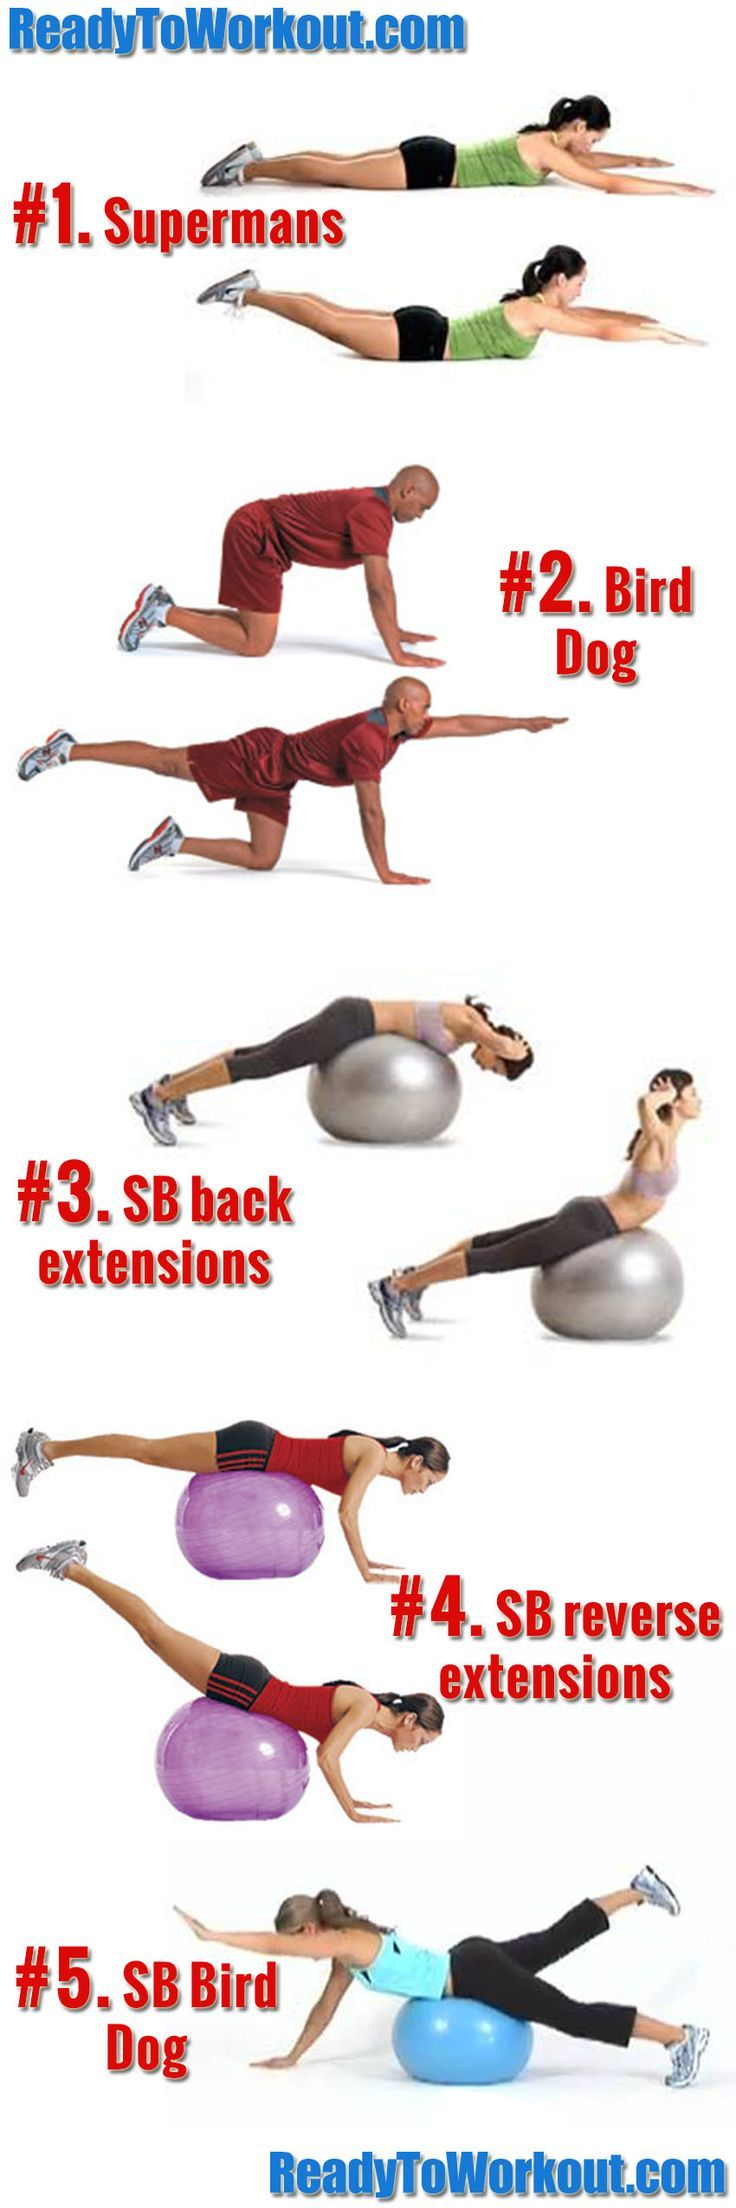 cool Lower Back Exercises You Can Do at Home - Ready To Workout